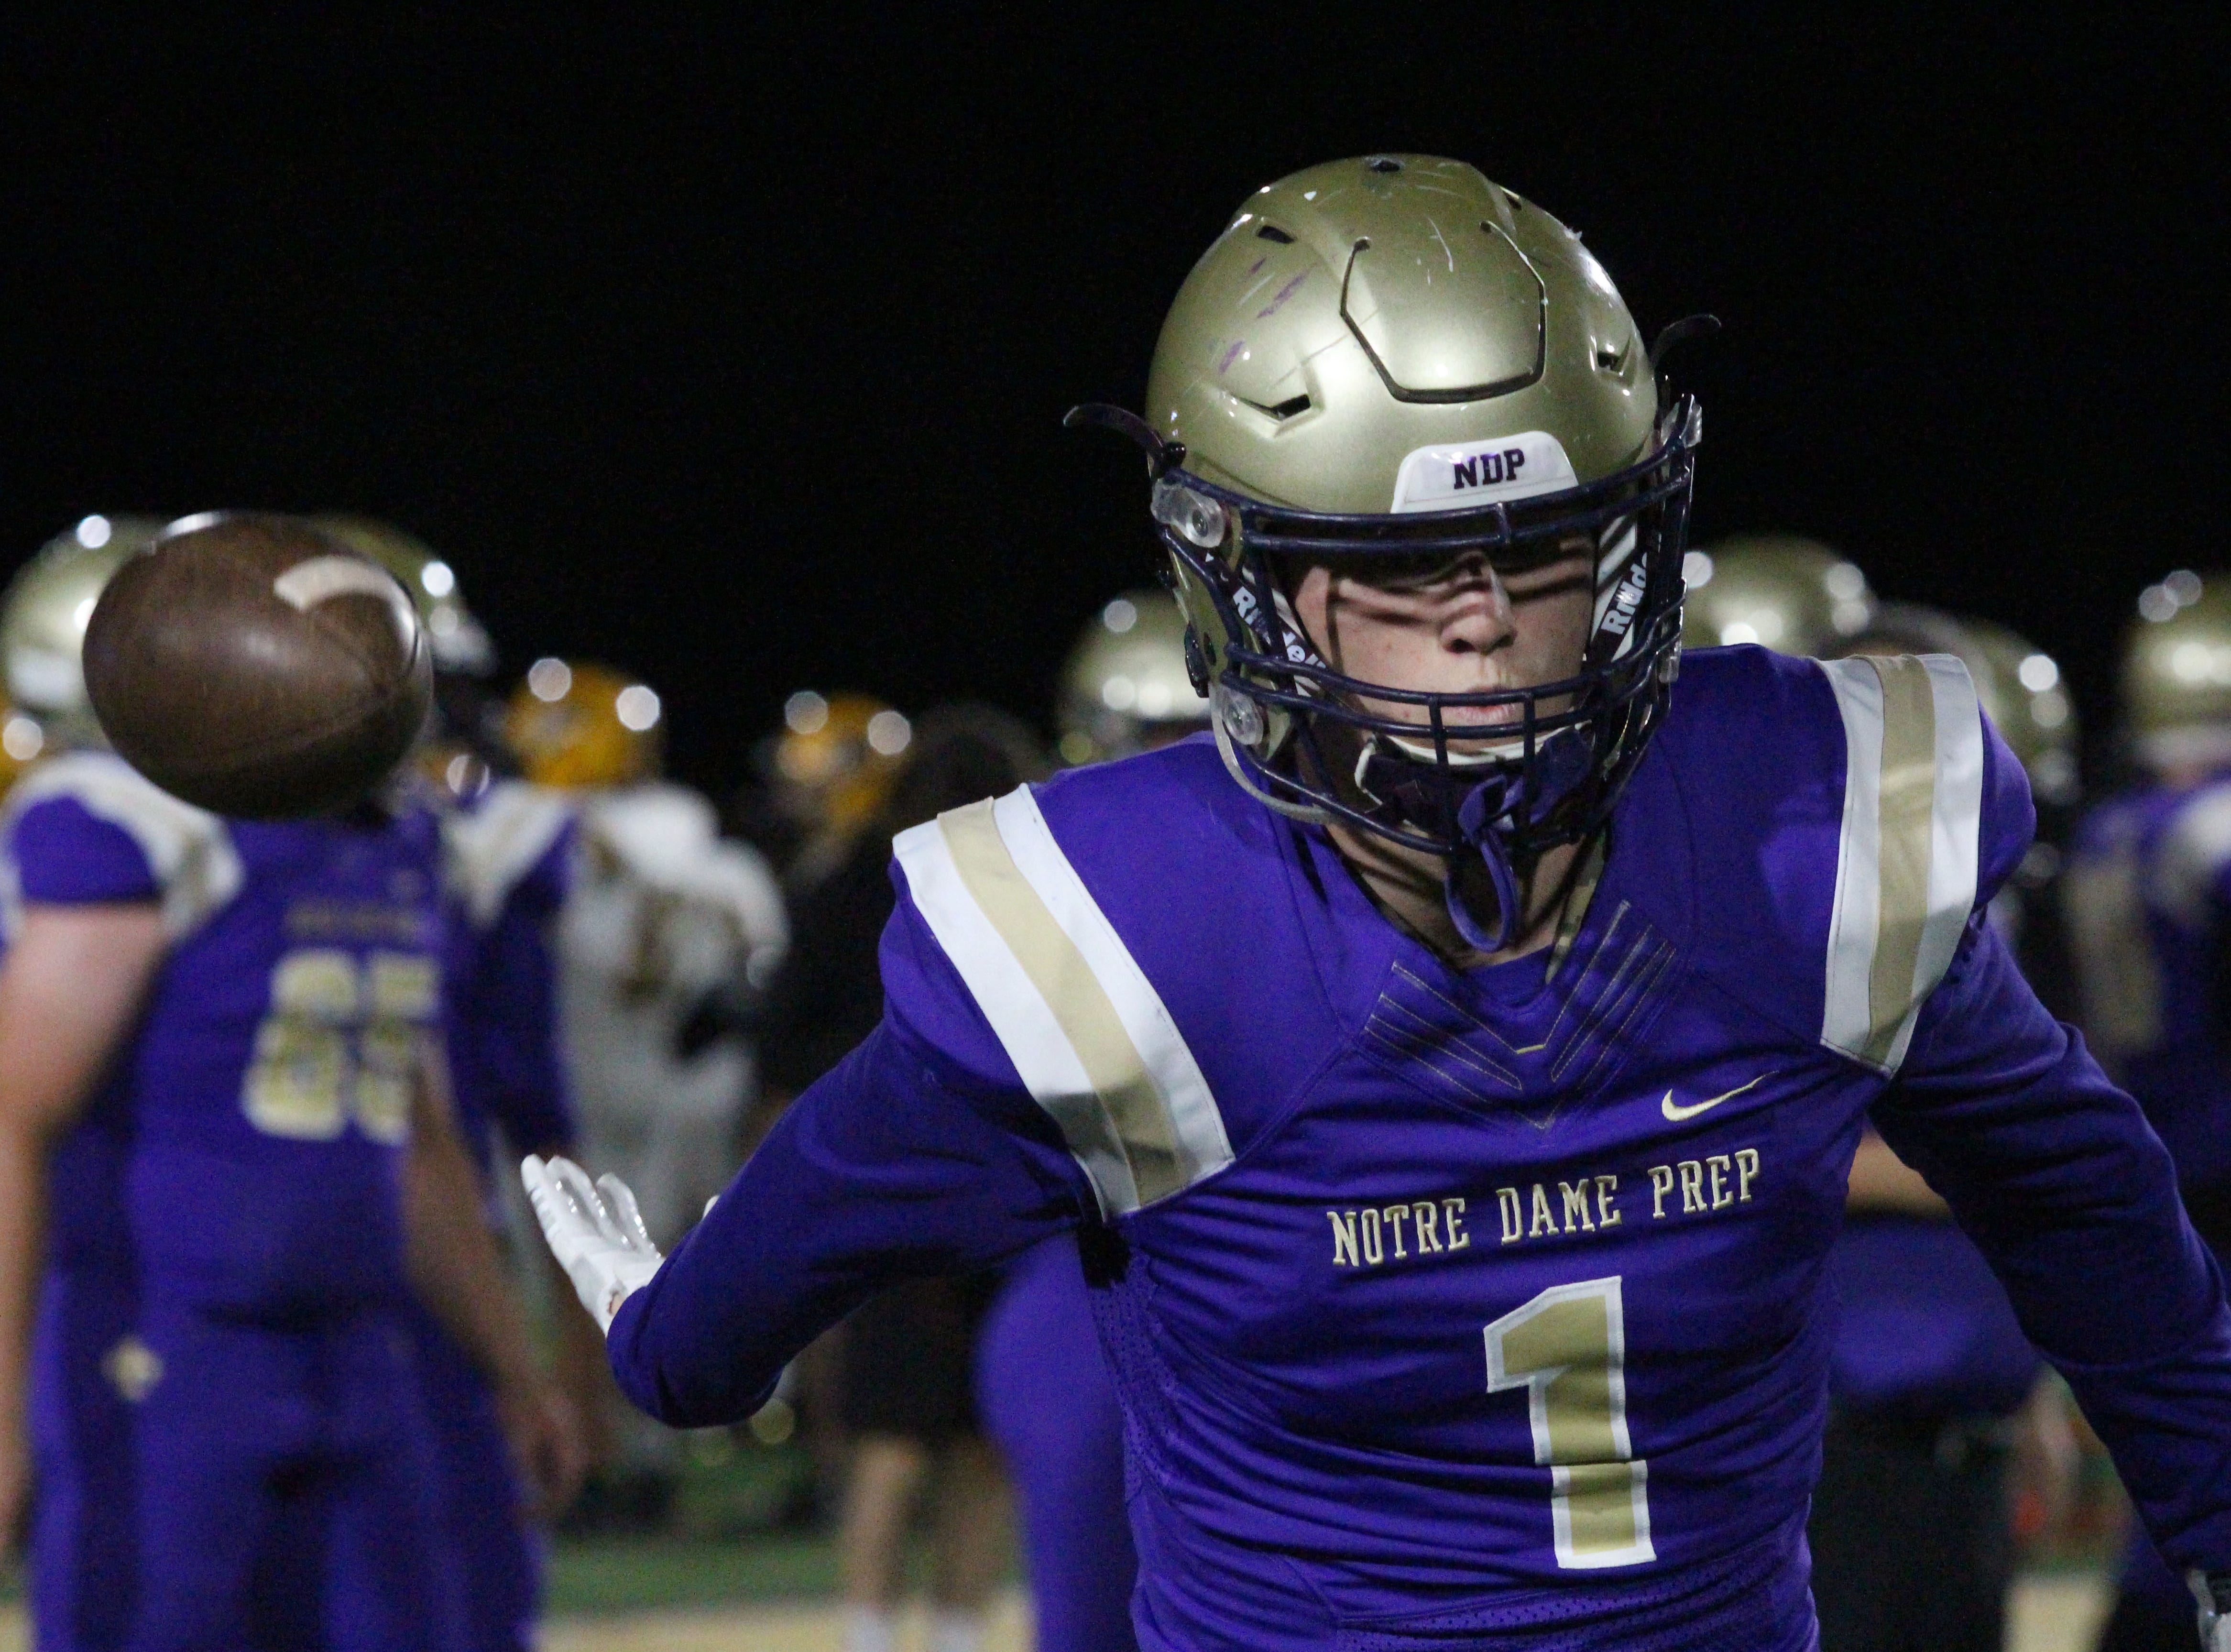 Notre Dame's Jake Smith tosses the ball behind him before the Saint's game against Gilbert on Friday night at Notre Dame Preparatory High School on Nov. 2, 2018.